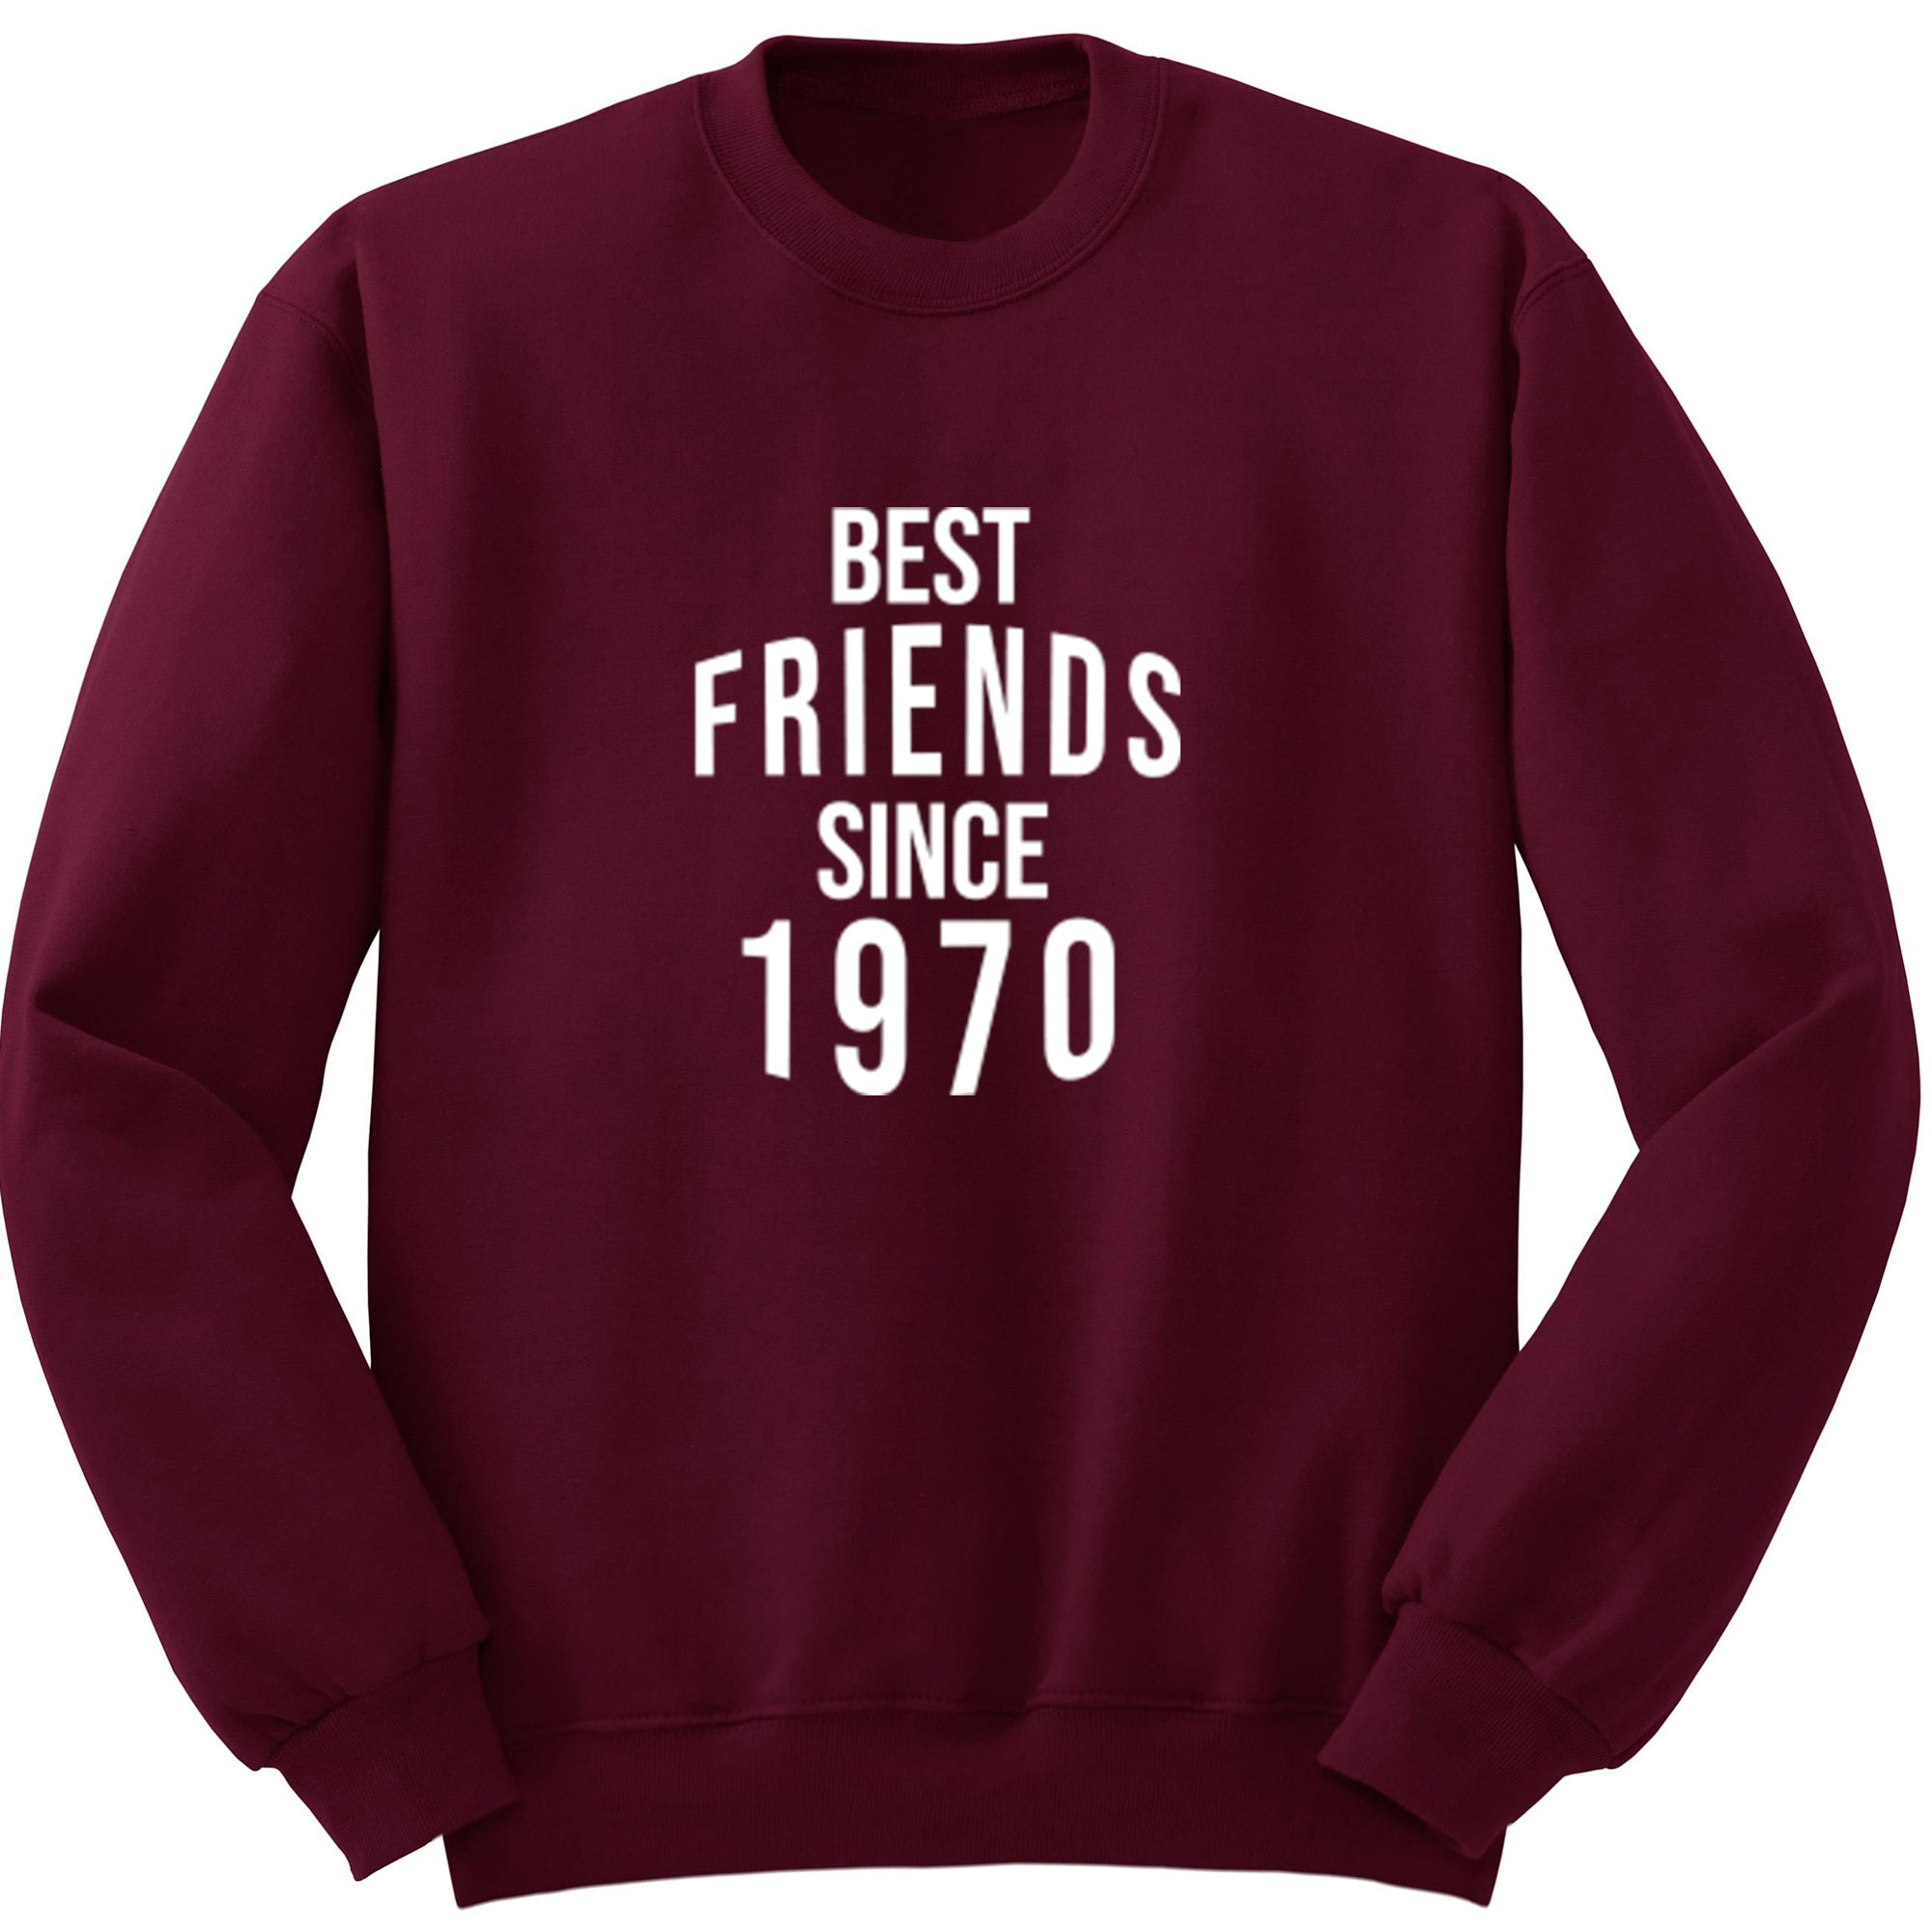 Best Friends Since 1970 Unisex Jumper S0549 - Illustrated Identity Ltd.